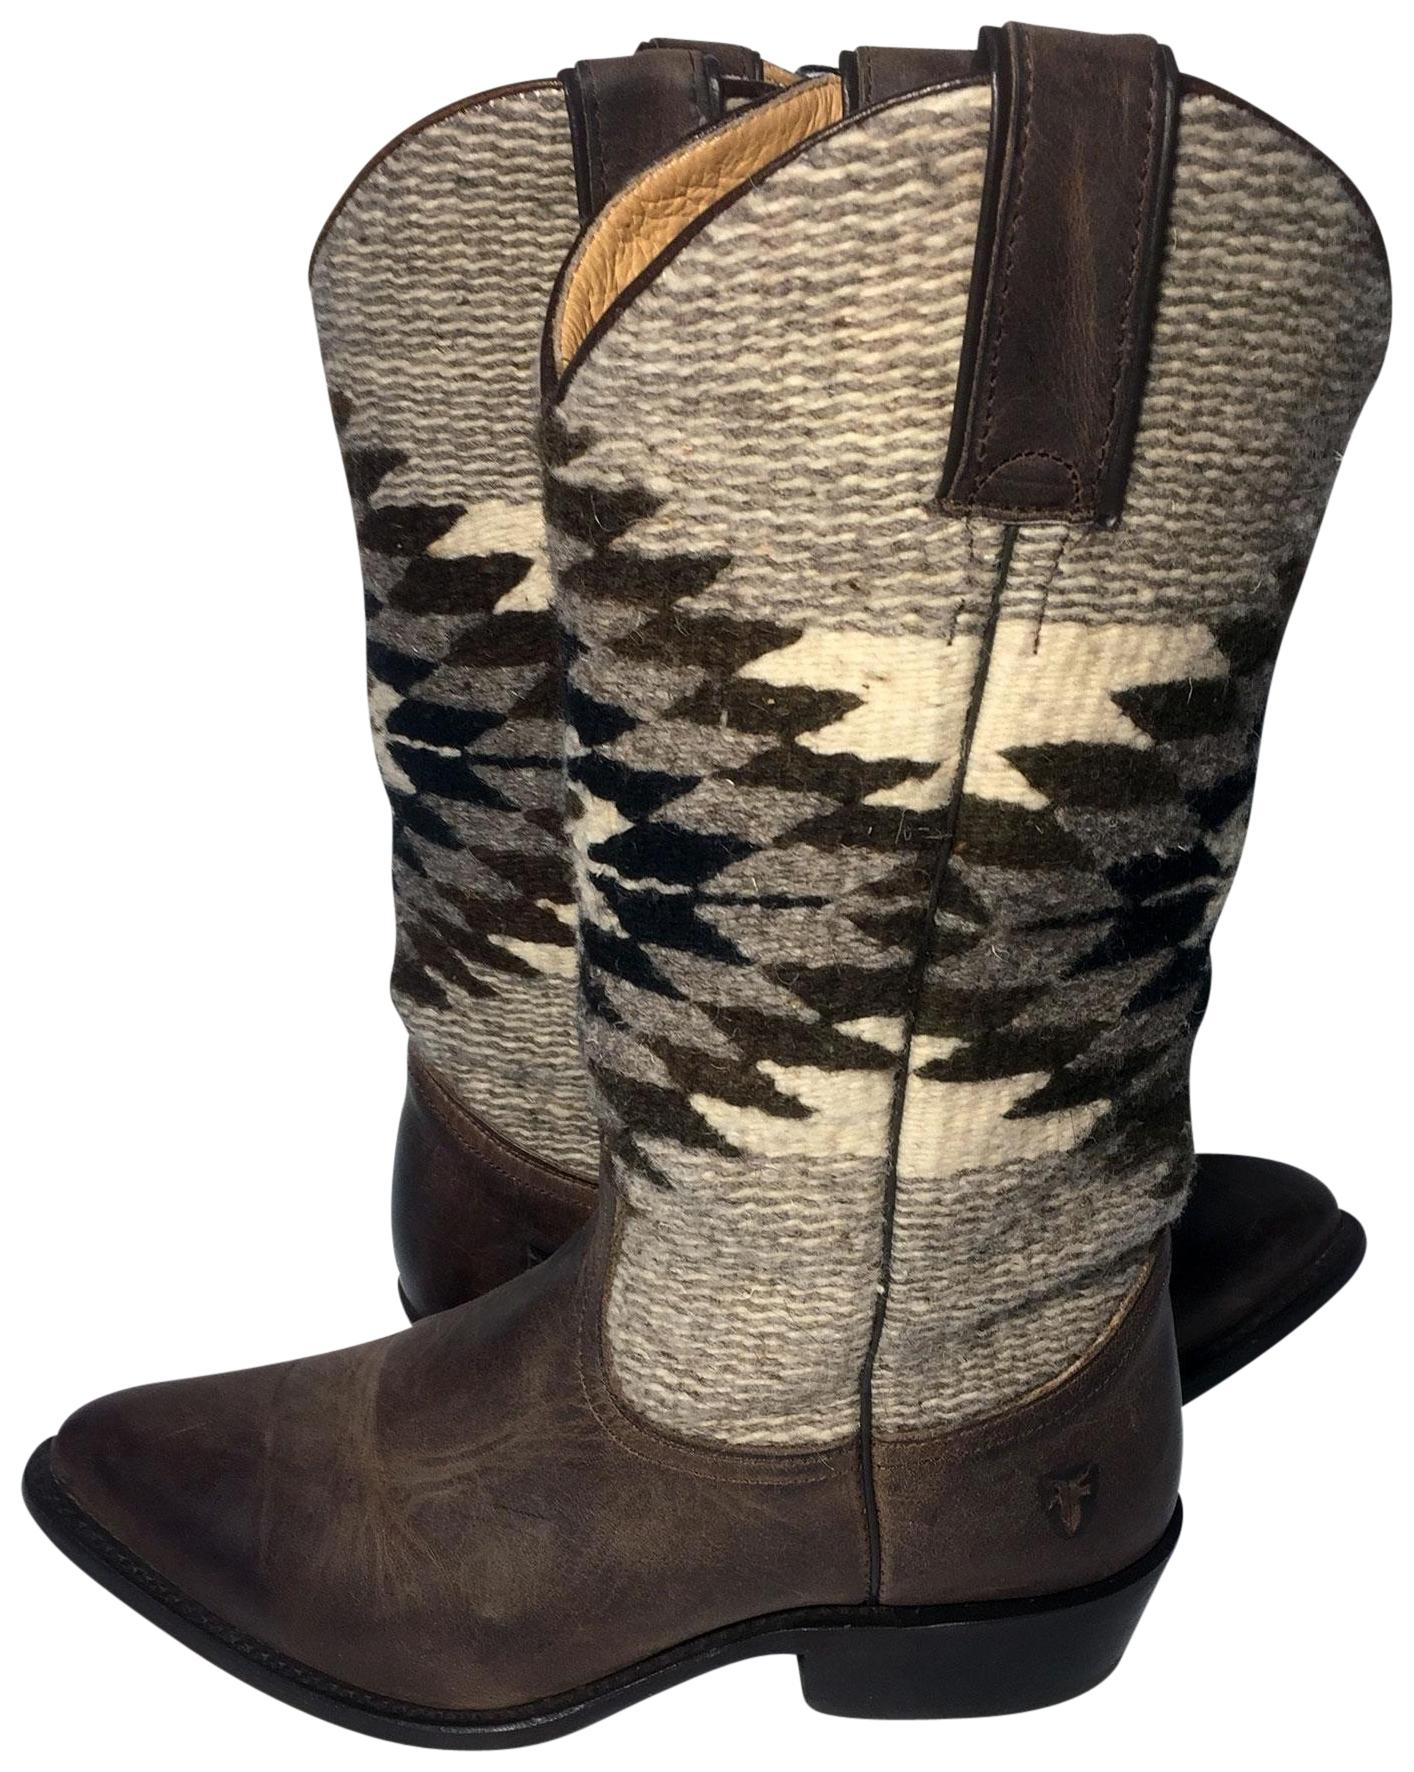 Frye Brown 77719 Billy Leather Wool Cowgirl Women Boots/Booties Size US 8.5 Regular (M, B)